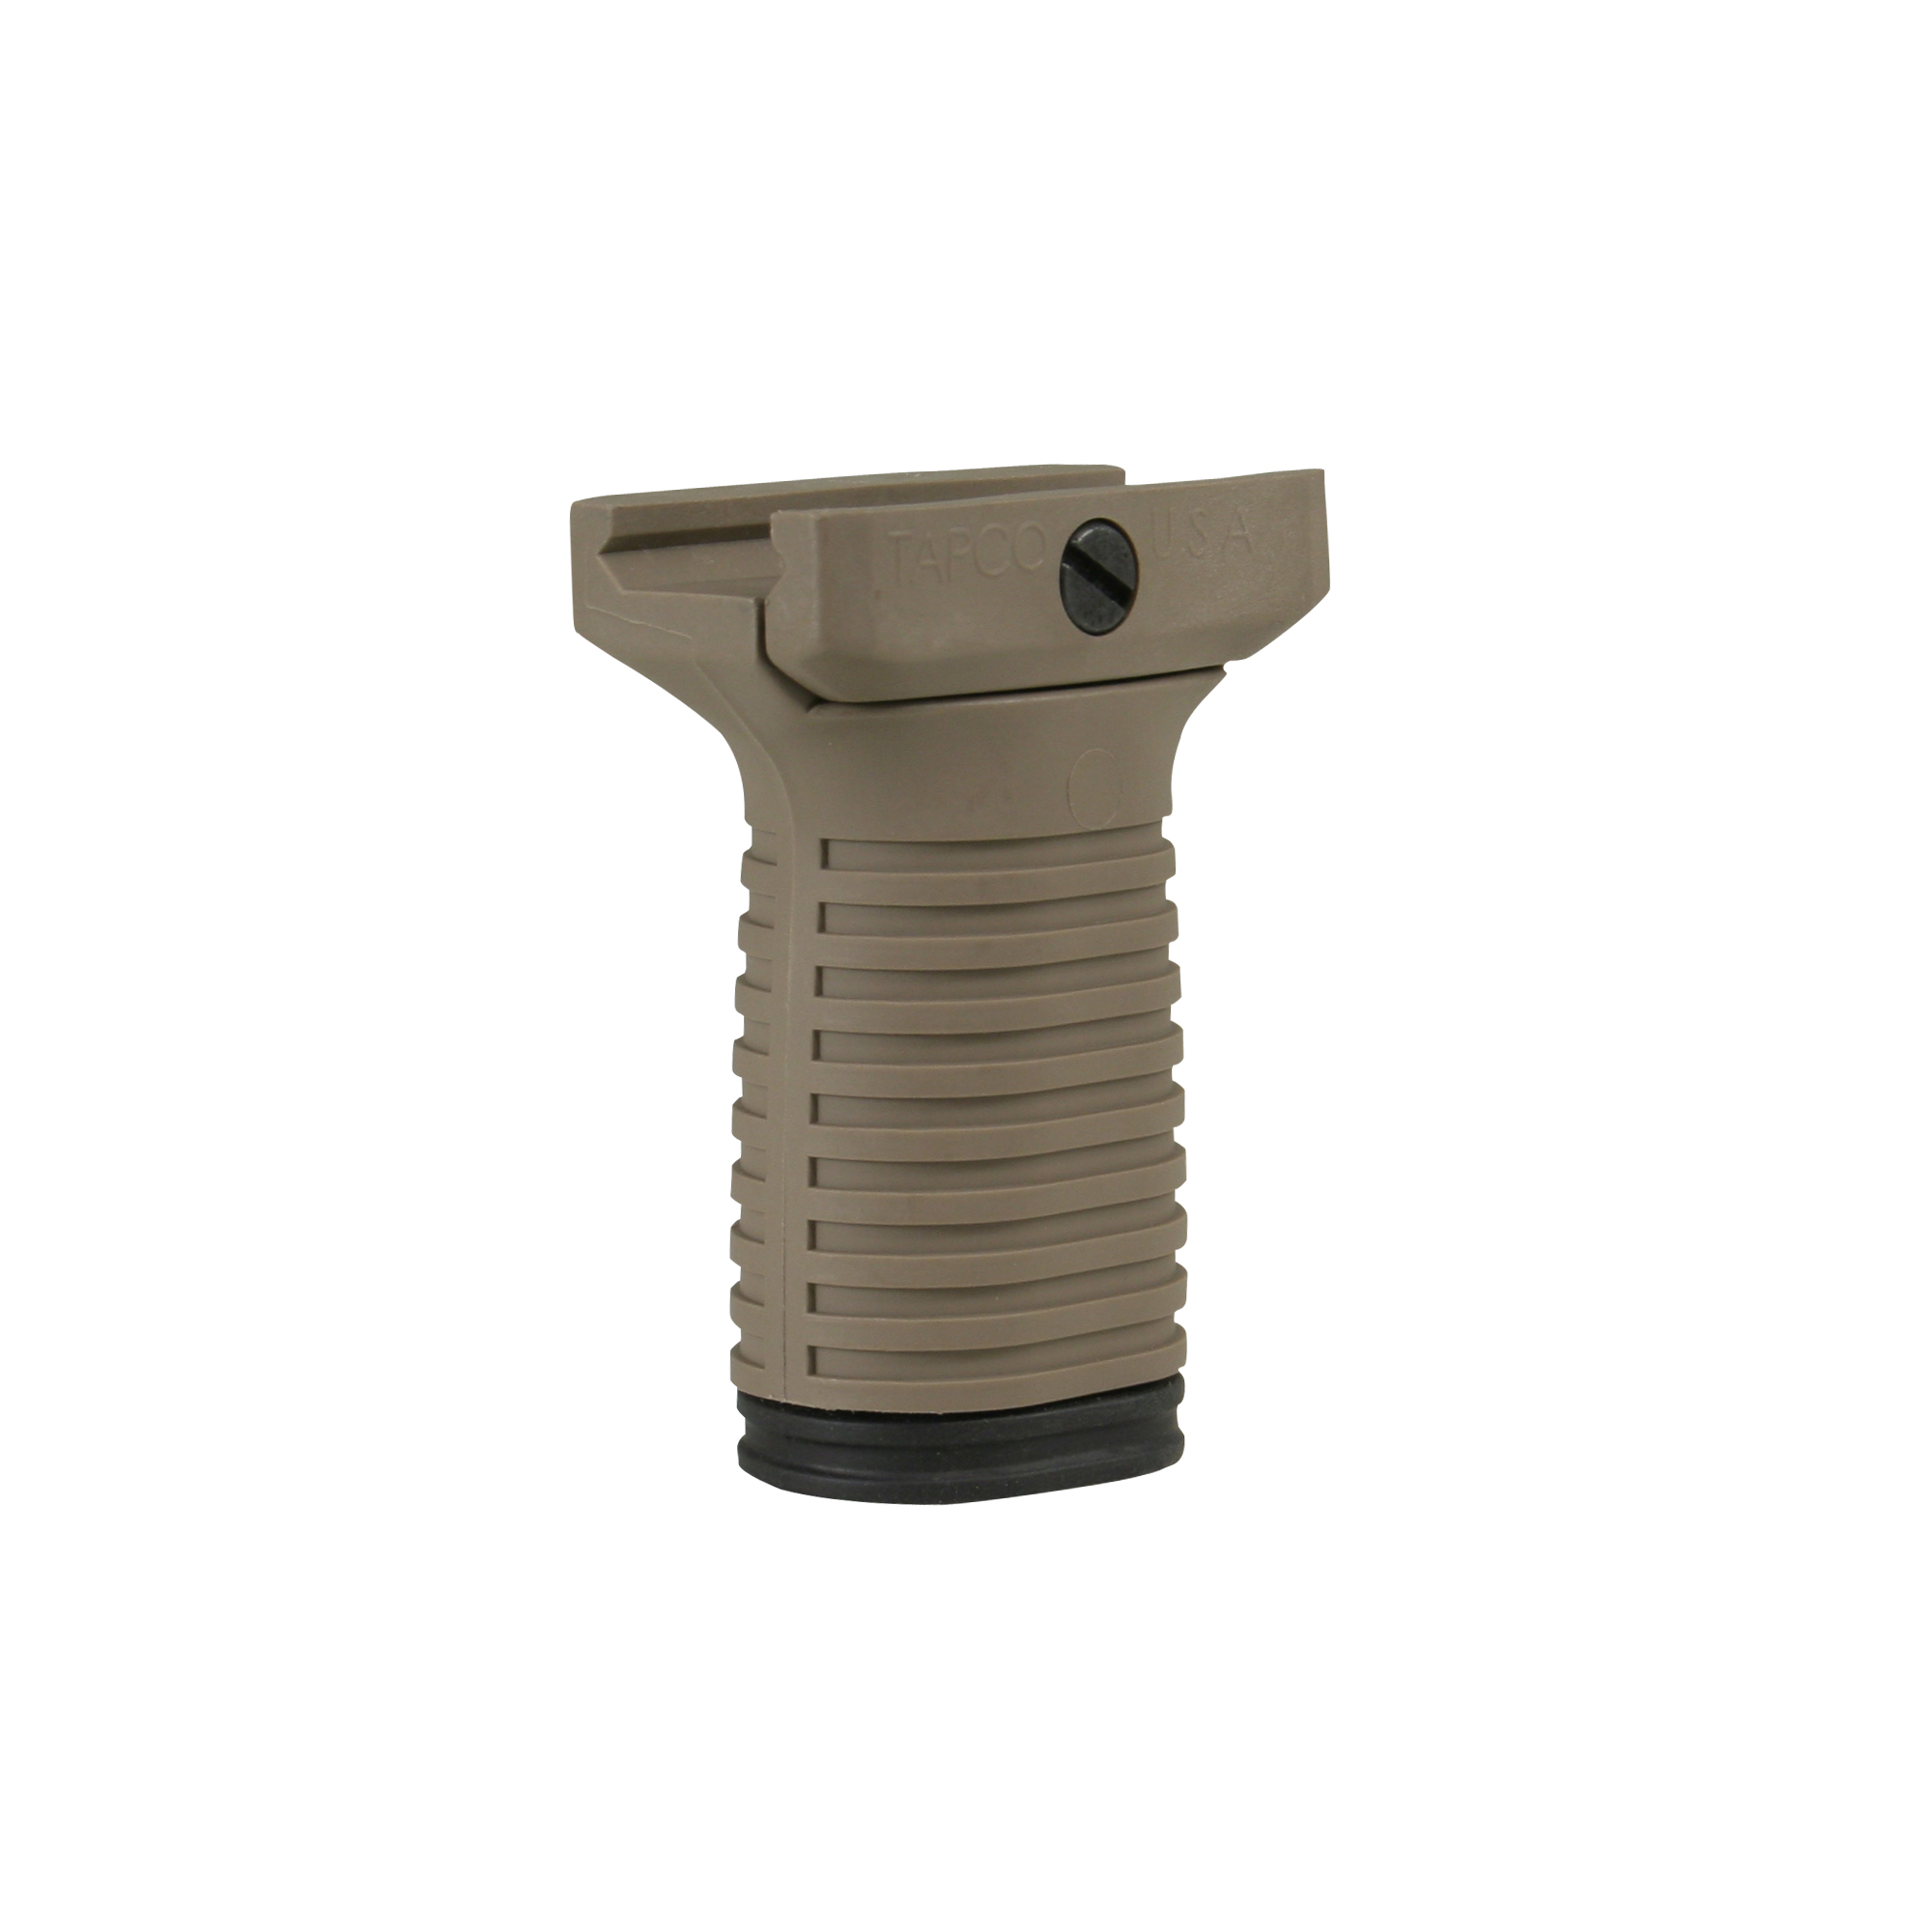 "A shortened version of our popular Standard Length Vertical Grip. The reduced length will not interfere when using large capacity mags in your AK. You can have all the shiny gadgets you want on your rifle"" but it isn't worth much if you can't control the rifle enough to hit the broad side of a barn. They want to put some of that control back in your hands"" literally"" with the INTRAFUSE(R) Vertical Grip. The grip is designed to give you ultimate command over your rifle and enable you to acquire targets much faster. They have flattened out the sides for a solid attachment of tactical light tape switches and created a waterproof storage compartment within the grip for the safe storage of batteries and other firearm essentials. They dare you to mount the INTRAFUSE(R) Vertical Grip on your favorite rifle and tell us that it doesn't give you more power over your rifle."